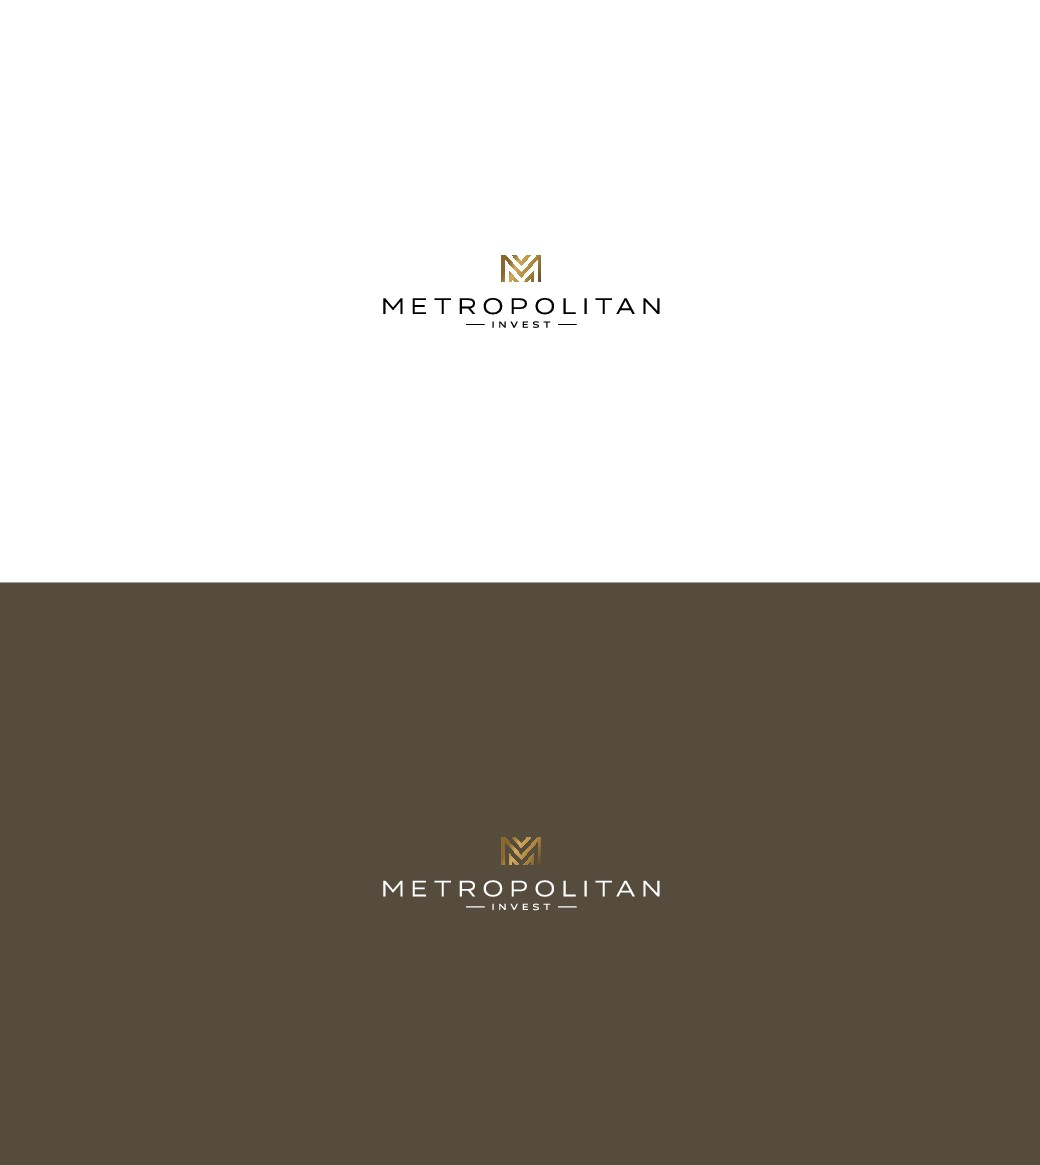 Metropolitan Invest - the second competition